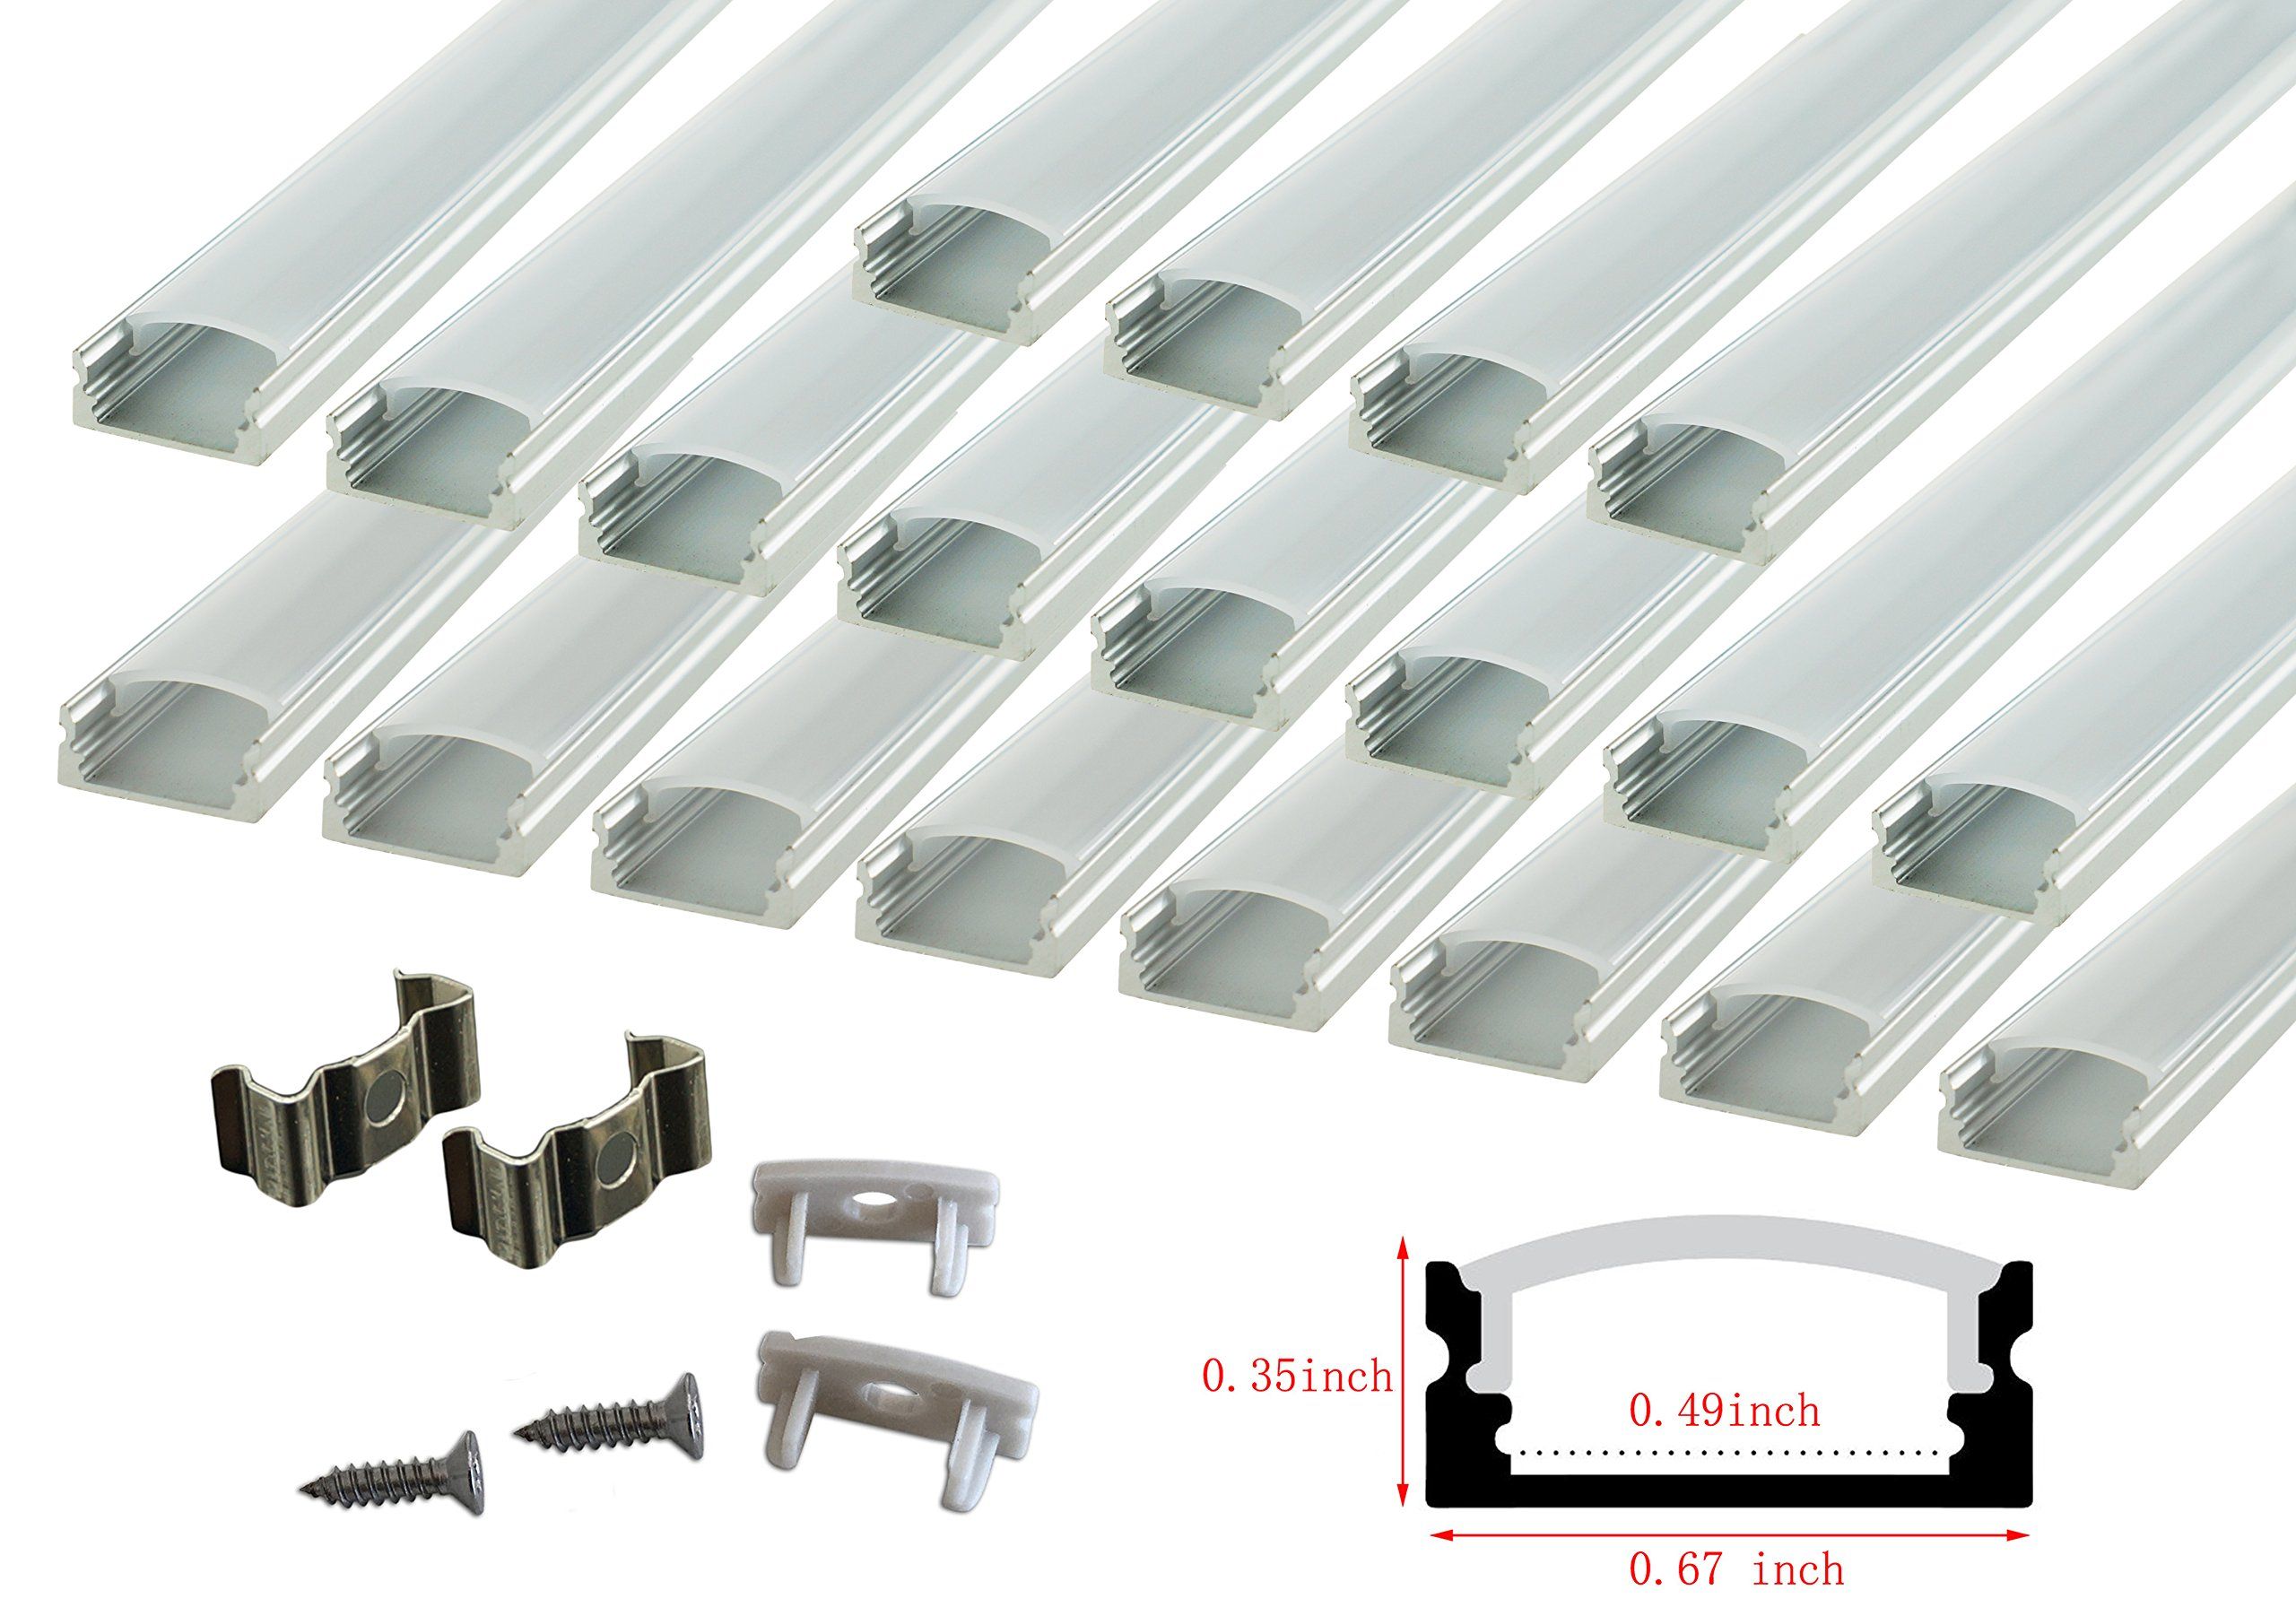 Muzata 20-Pack 3.3ft/1Meter U Shape LED Aluminum Channel System With Cover, End Caps and Mounting Clips, Aluminum Profile for LED Strip Light by Muzata